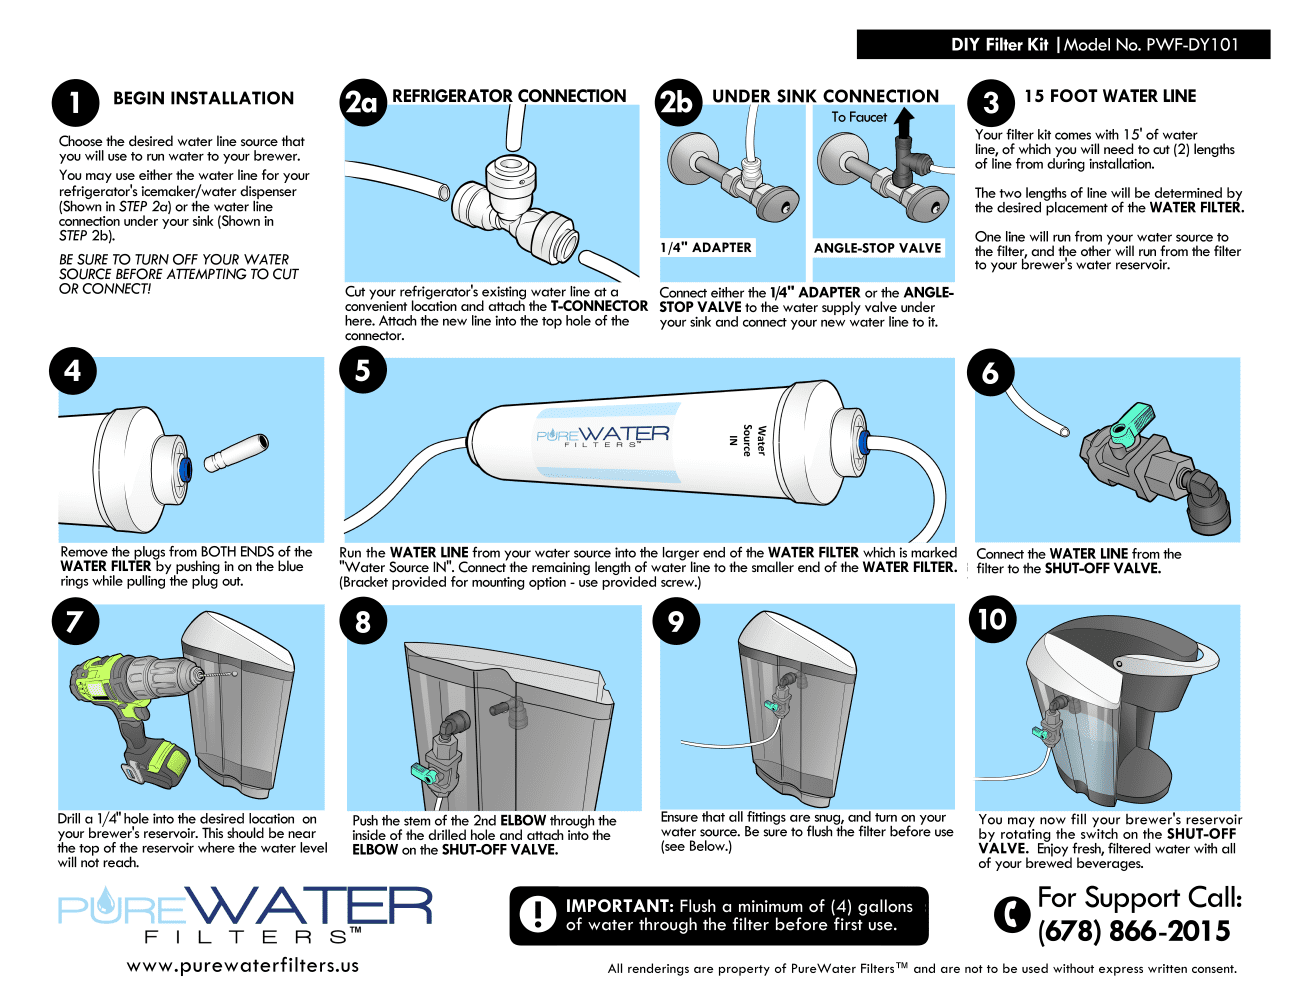 Keurig Do It Yourself Filter Kit Instructions by PureWater Filters